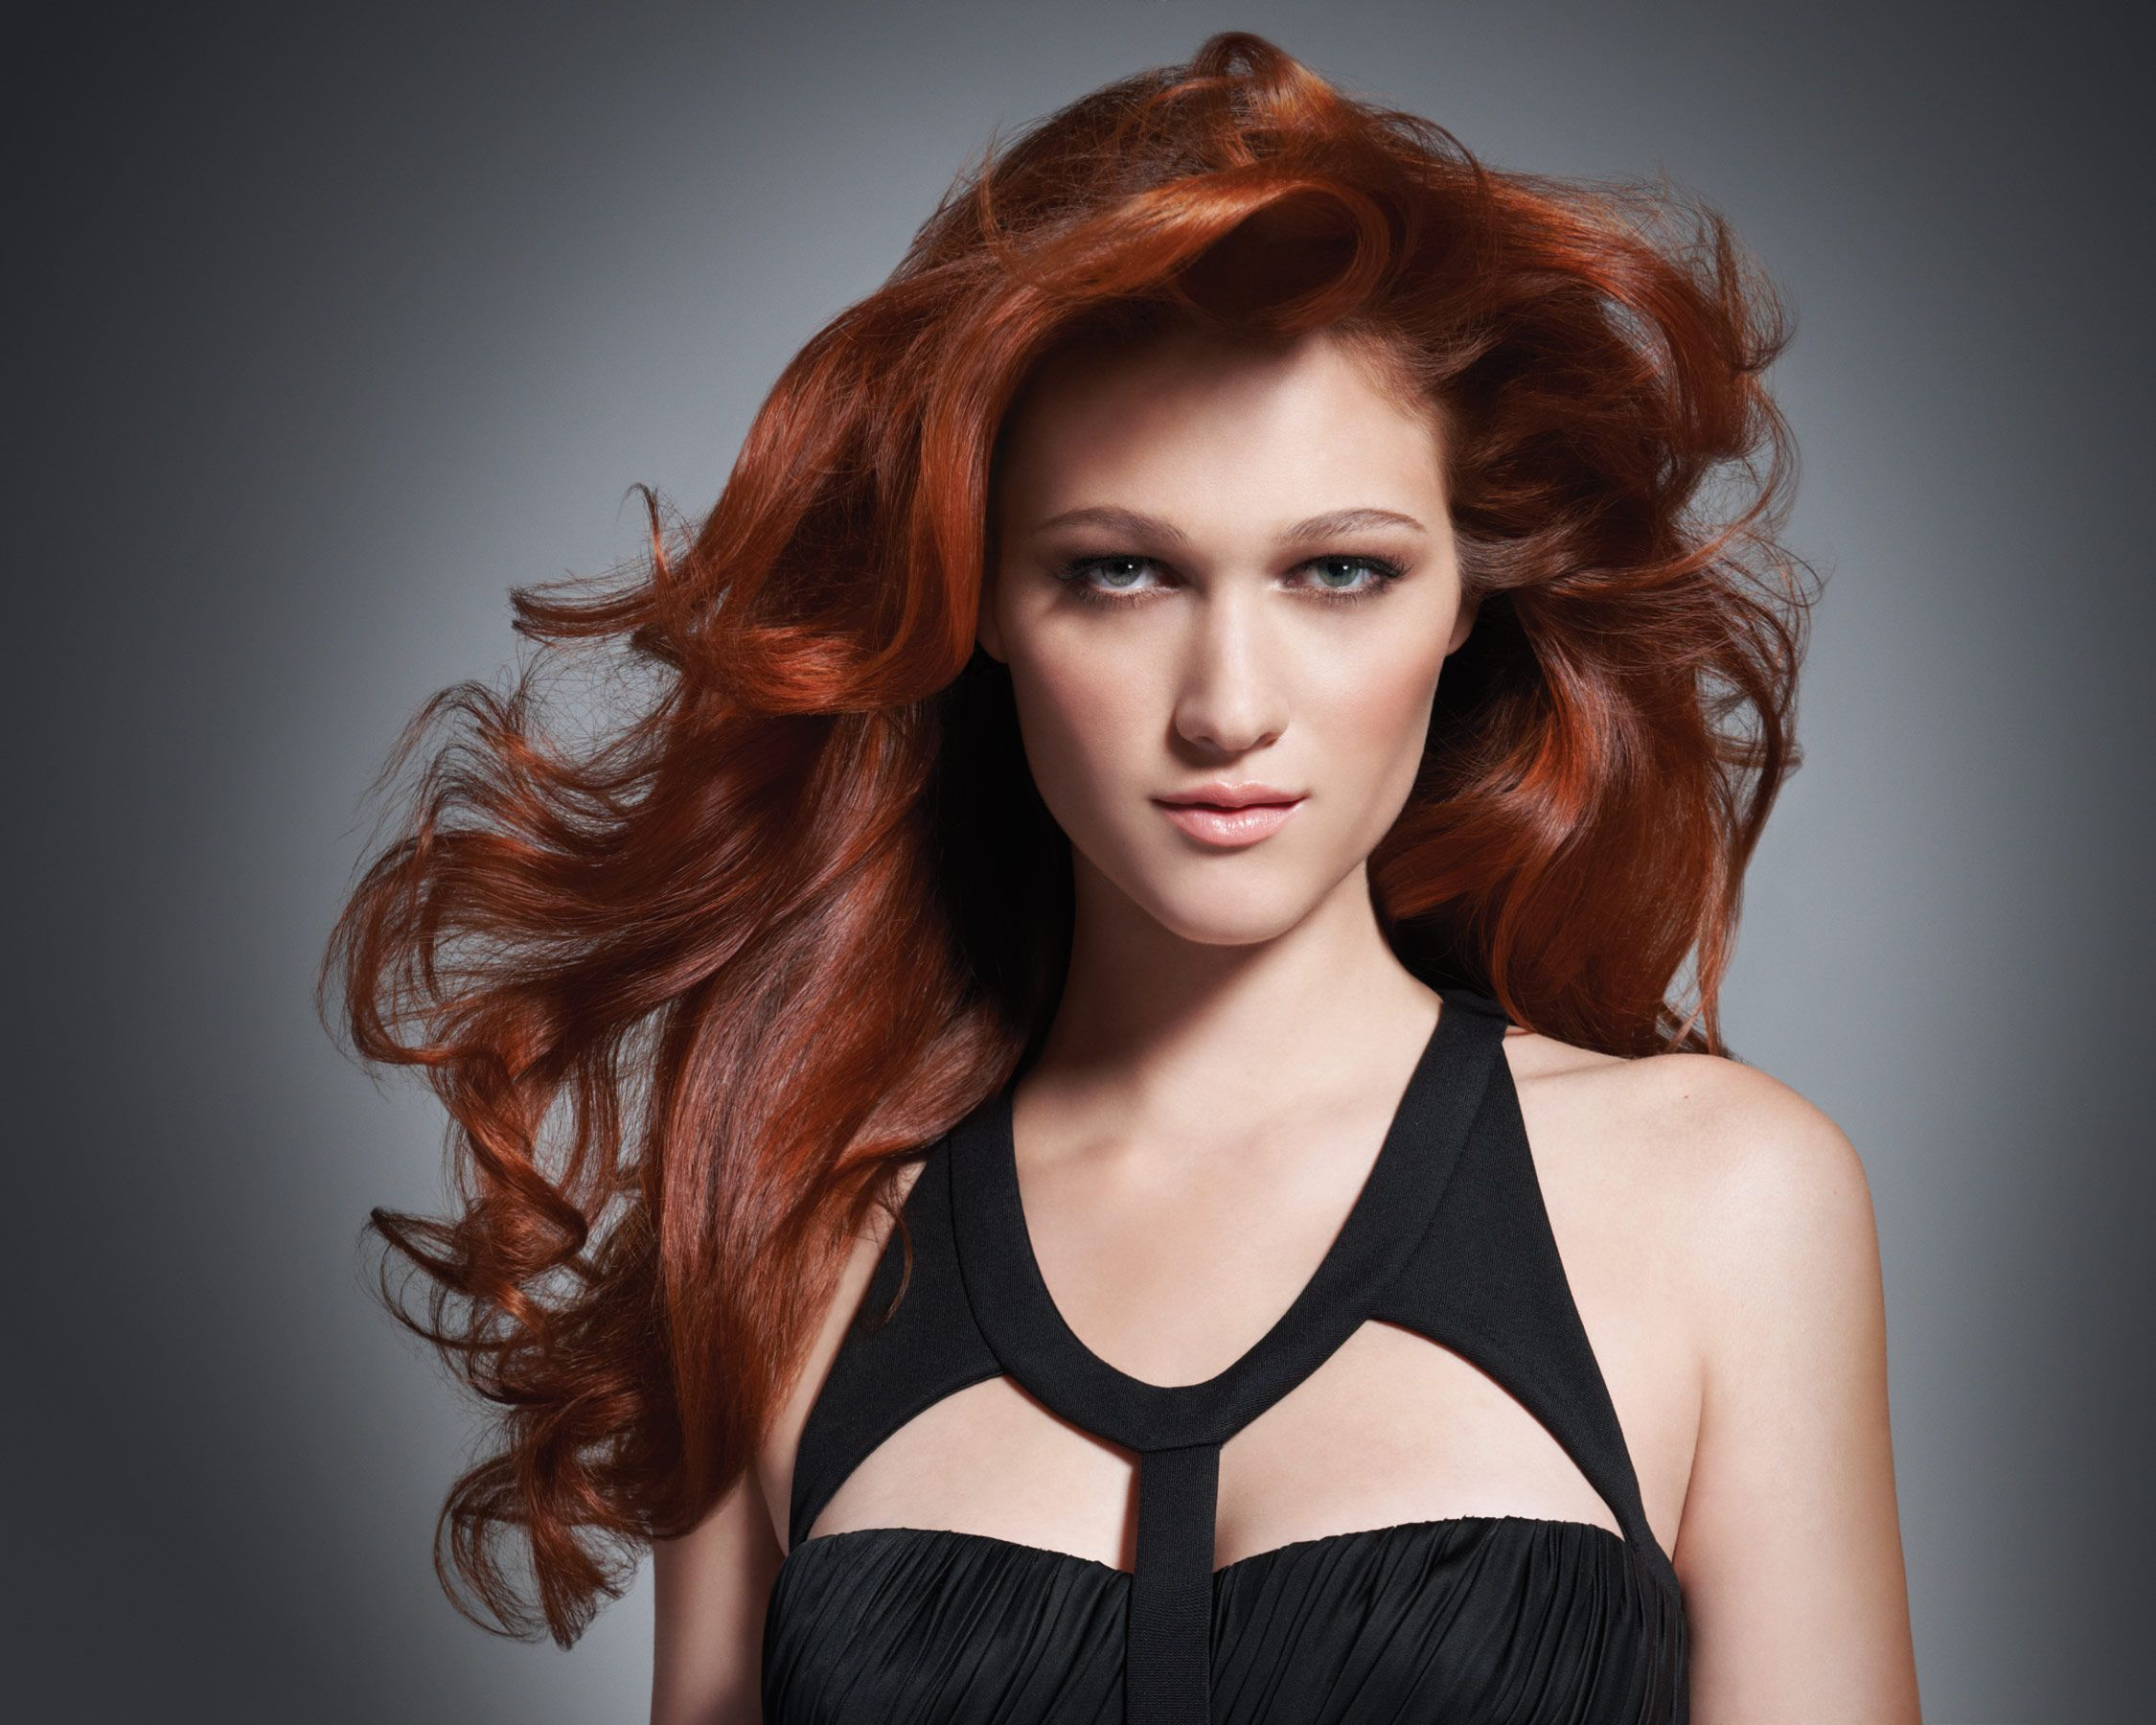 Get A Premium Hair Collagen Treatment With Prices Starting From Aed